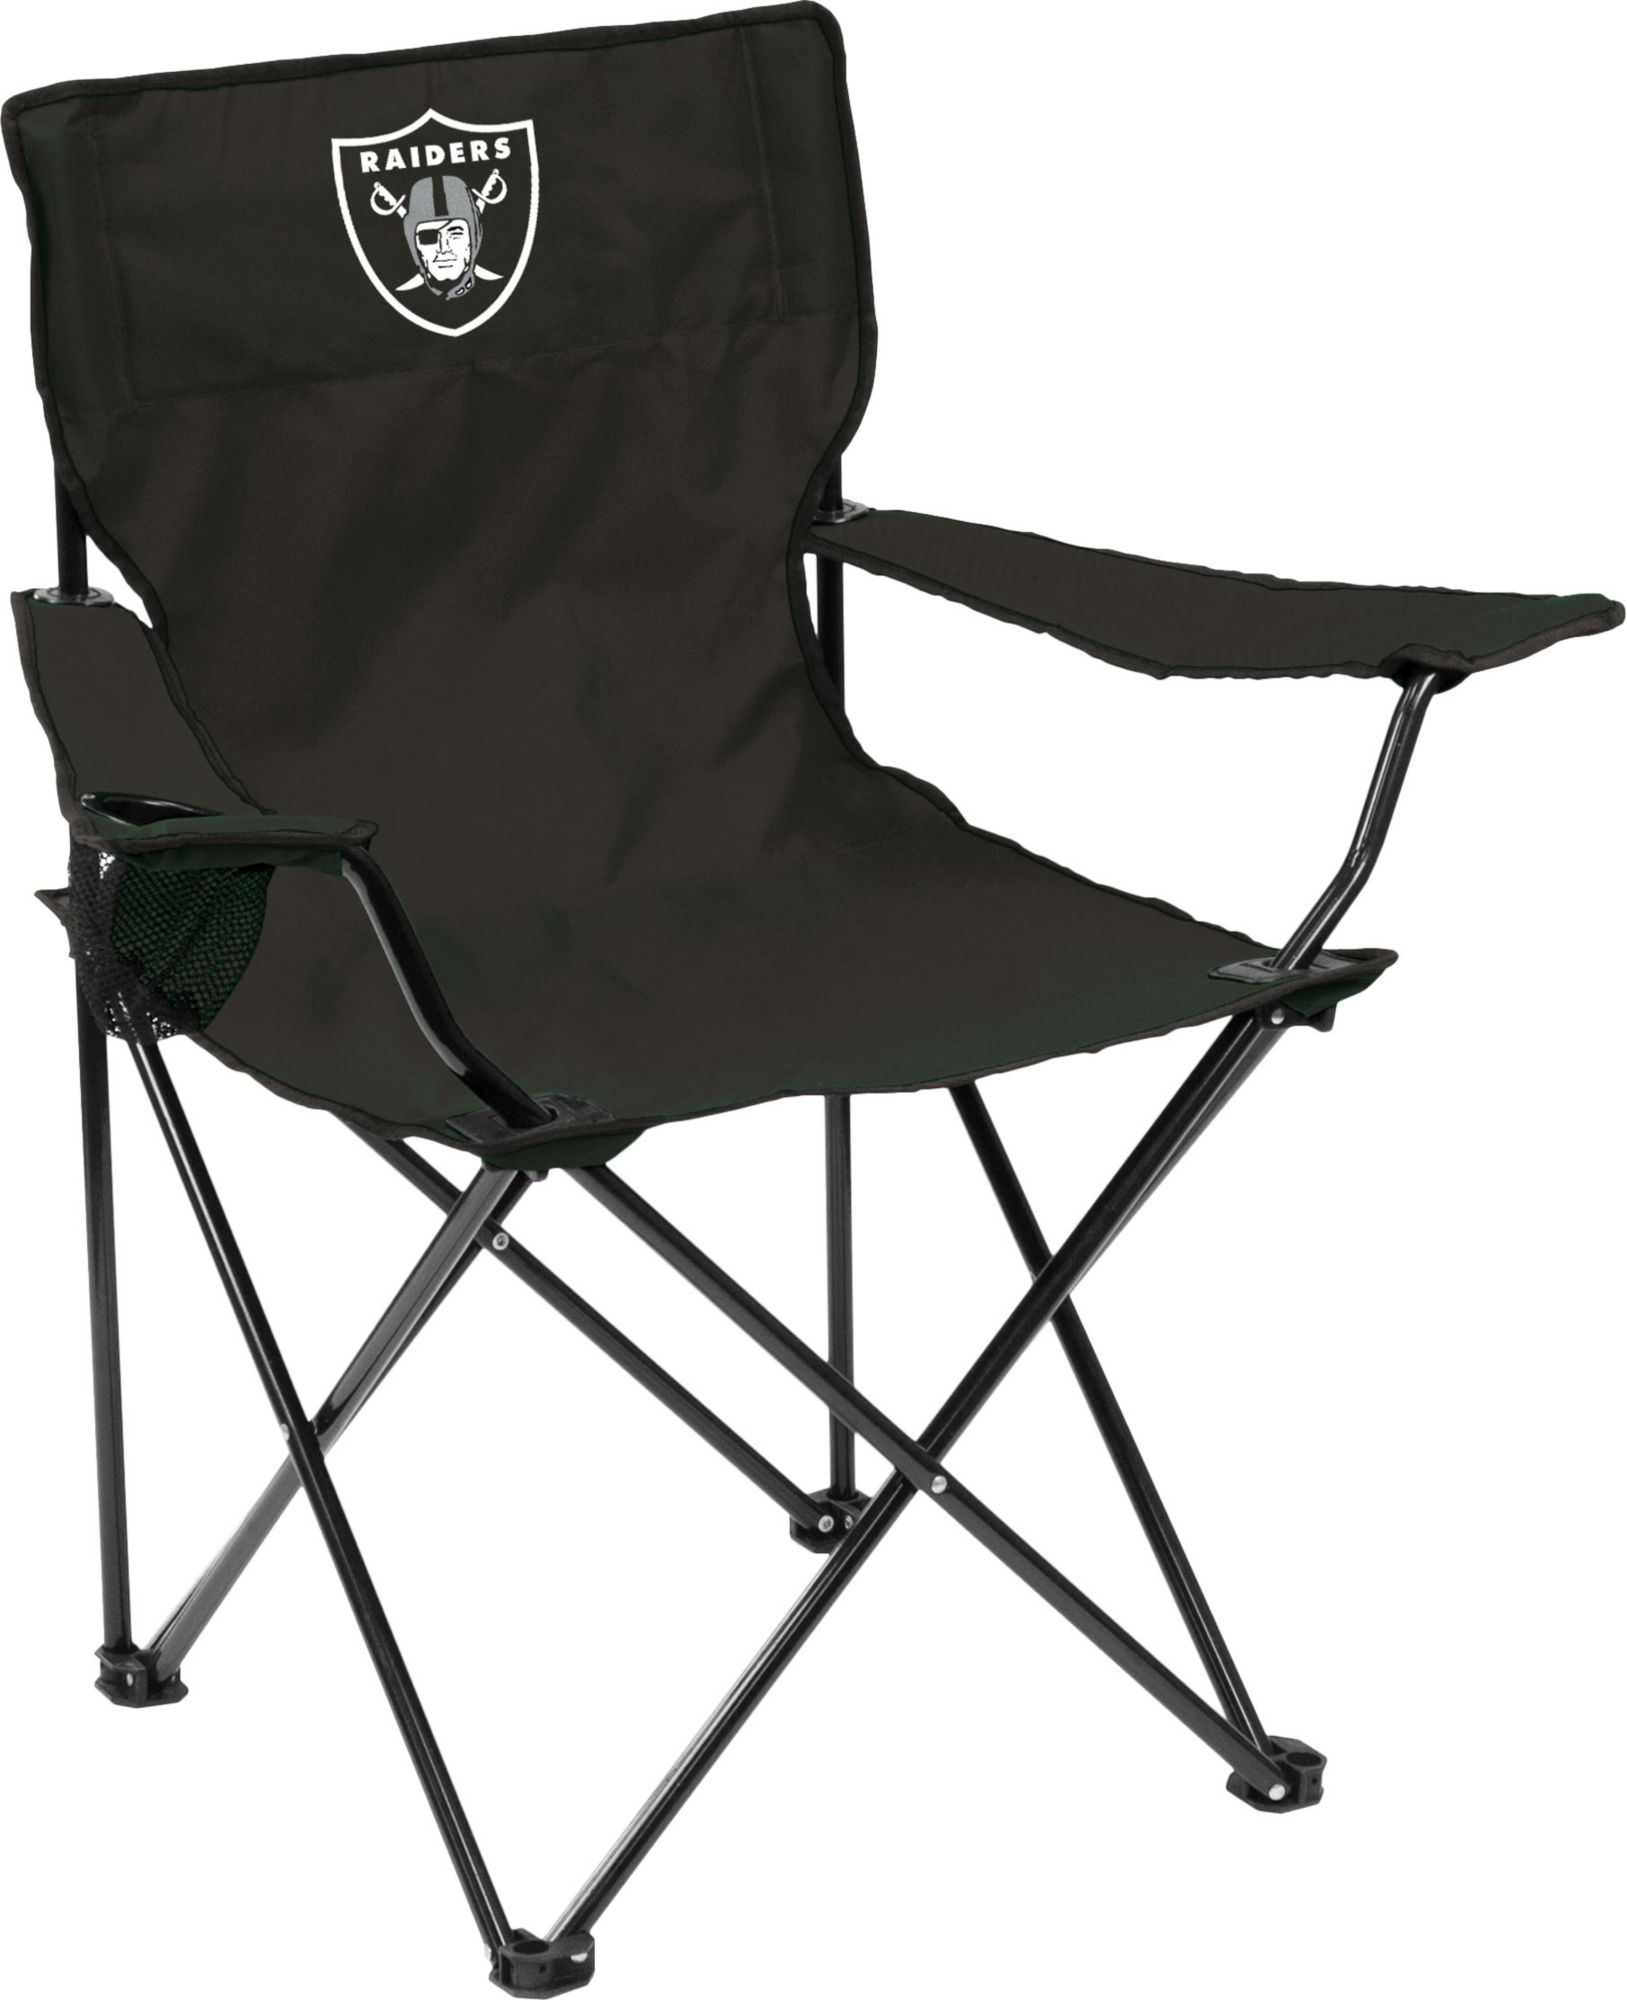 Superieur Oakland Raiders Quad Chair